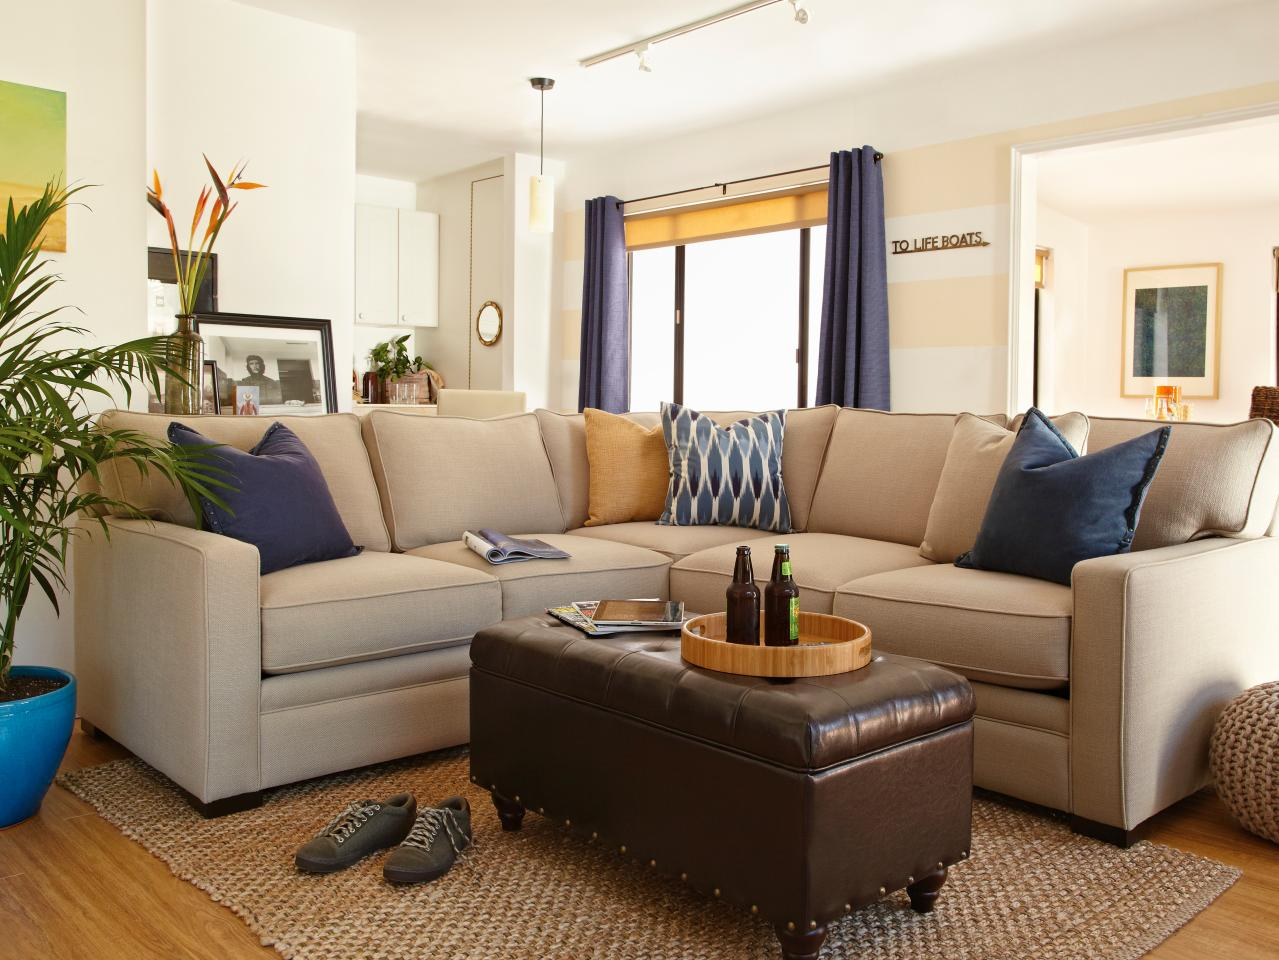 Hgtv Living Room Decorating Ideas Design Dos And Don'ts Of Decorating A Rental  Hgtv